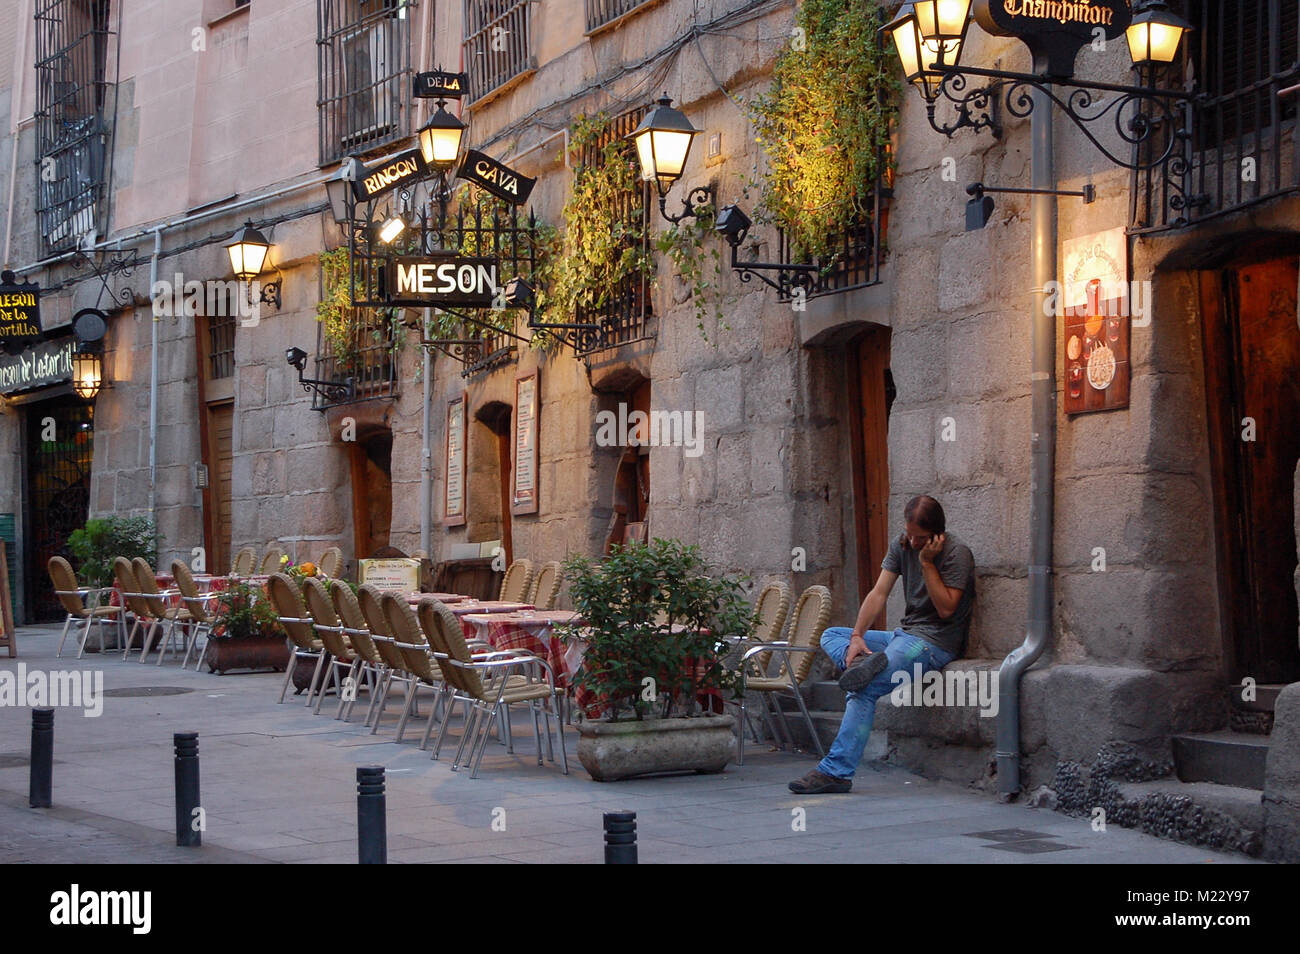 A young man has a call in front of the Meson Rincon de la Cava tapas restaurant off Plaza Mayor - Madrid, Spain - Stock Image